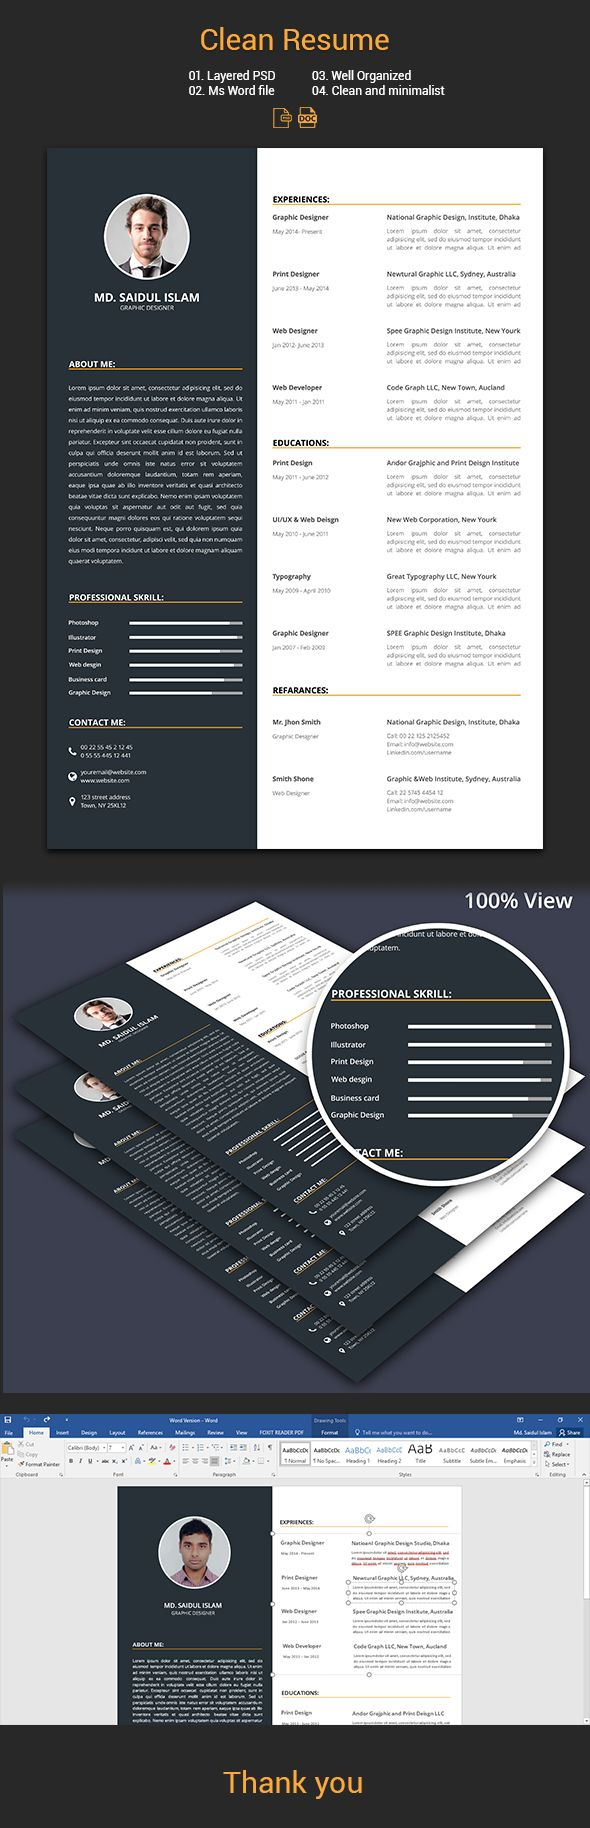 Clean Resume CV 2017 9 best